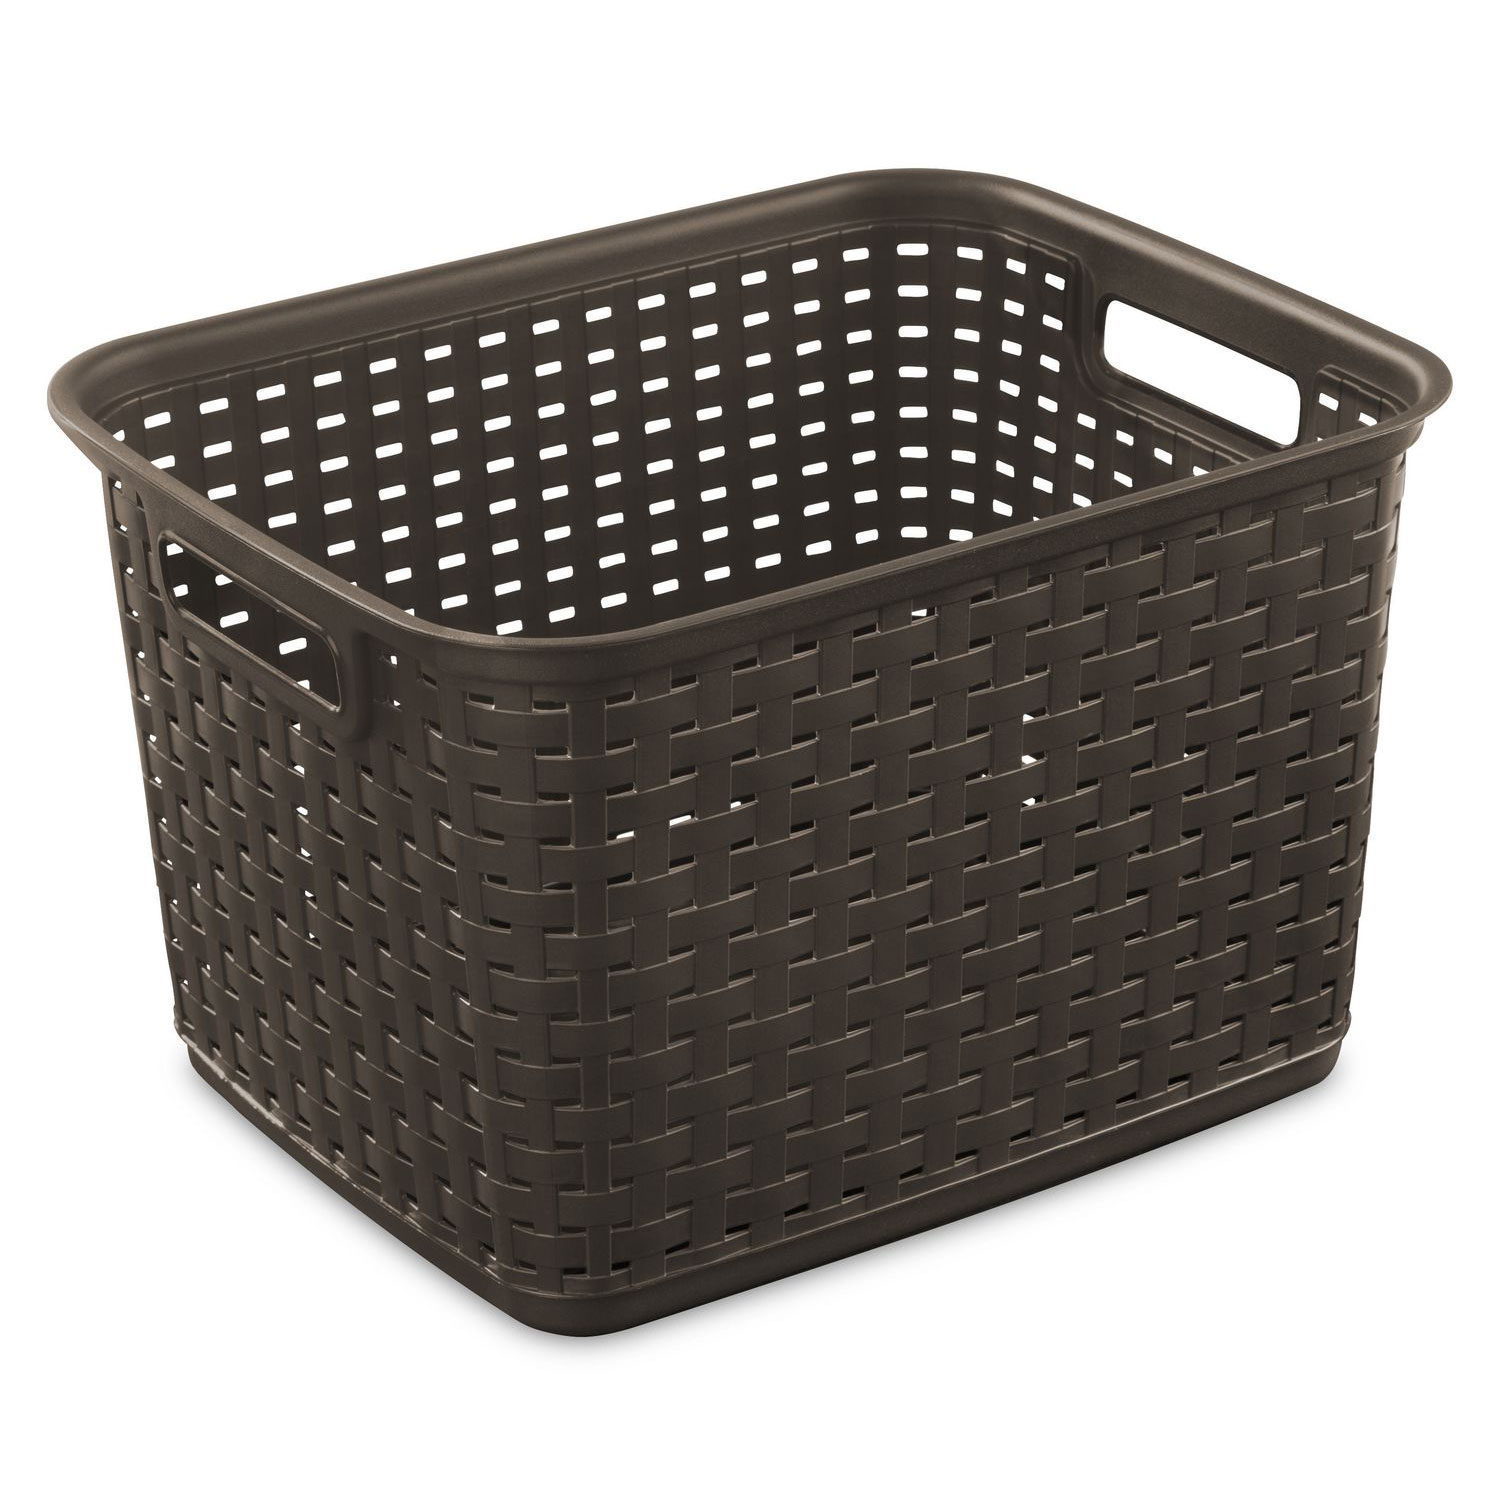 sterilite 12736 tall wicker weave plastic laundry storage basket brown 6 pack 692619984675 ebay. Black Bedroom Furniture Sets. Home Design Ideas